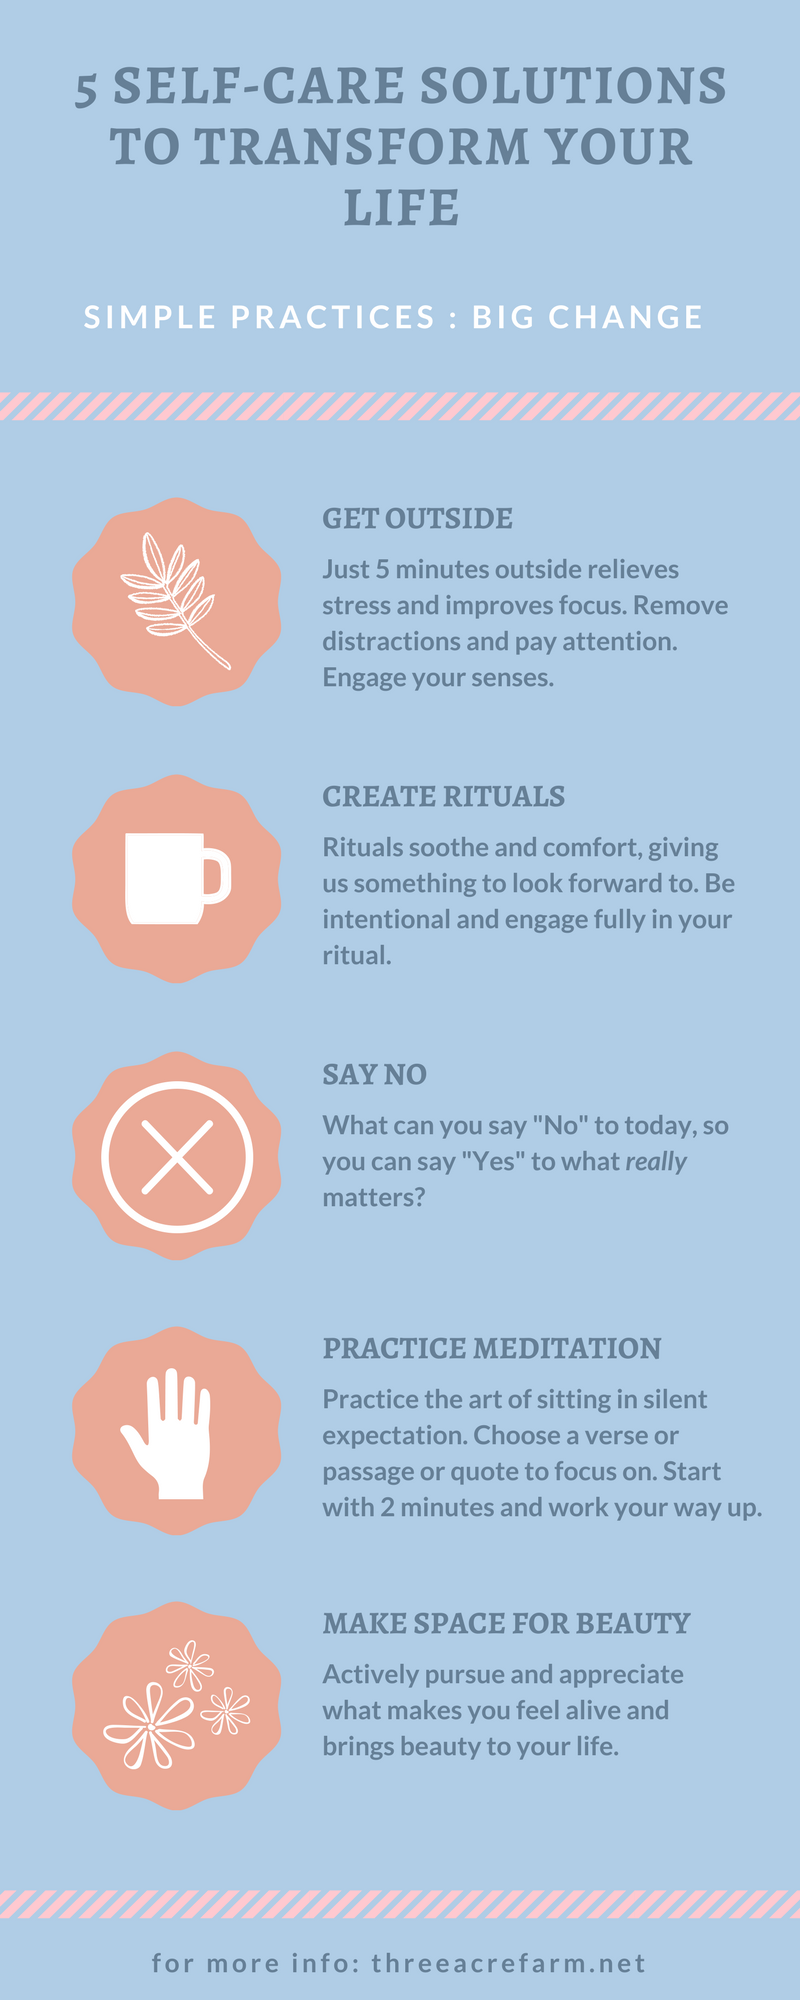 5 Self-Care Solutions to Transform your life.png